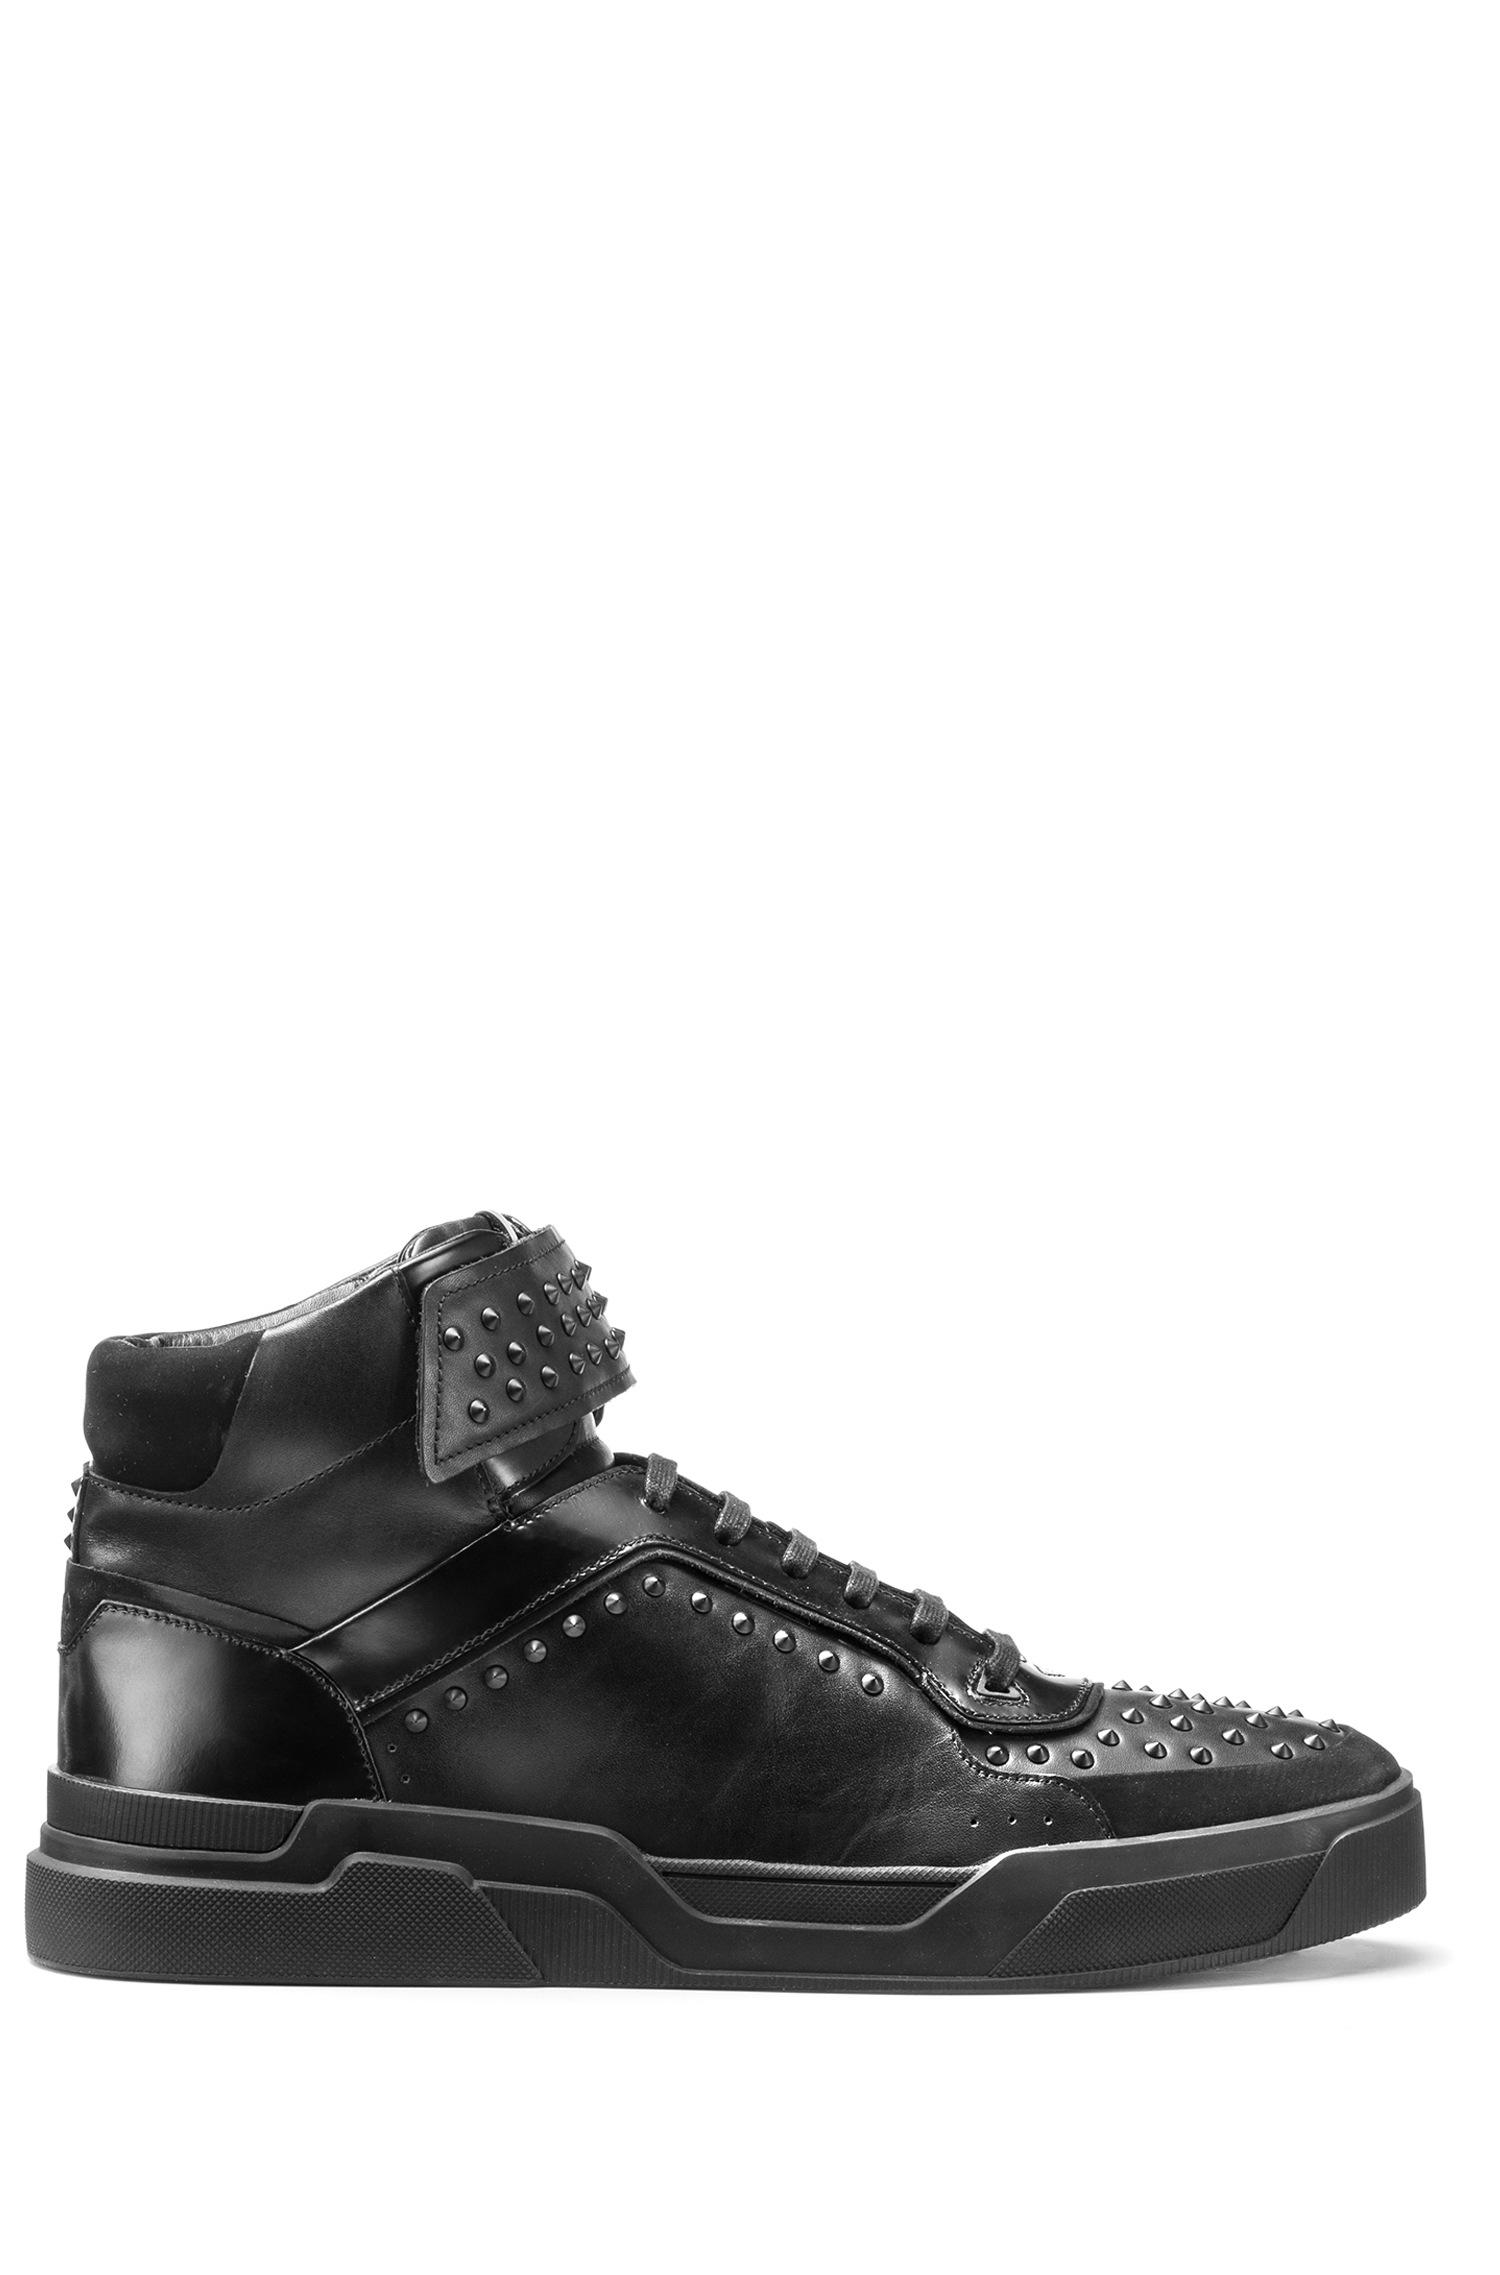 Studded high-top trainers in nappa leather HUGO BOSS GEhsrh